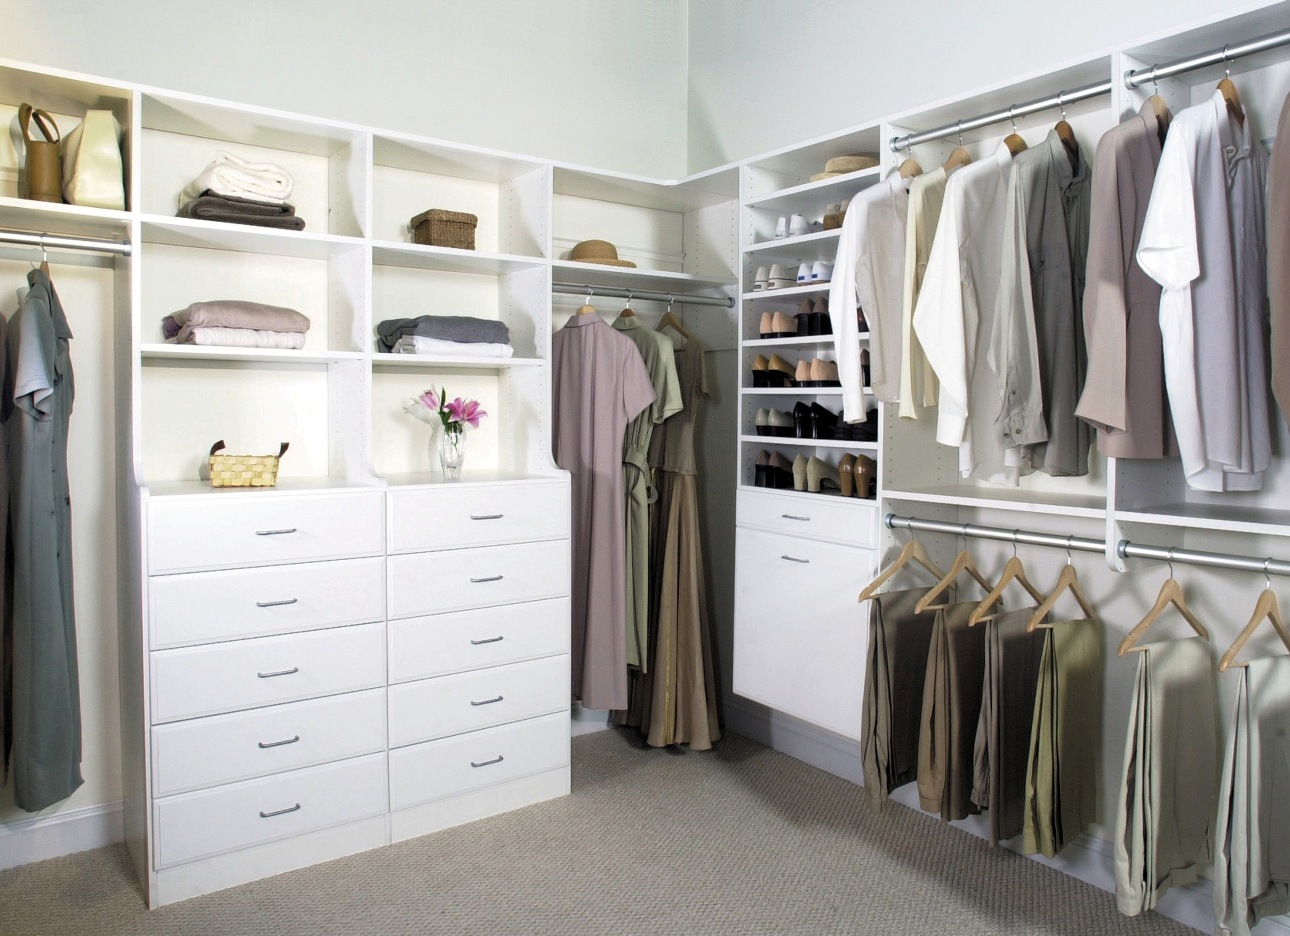 Complete Wide Walk In Closet with White Dresser and Tidy Clothes Hangers using Appealing Closet Design Ideas